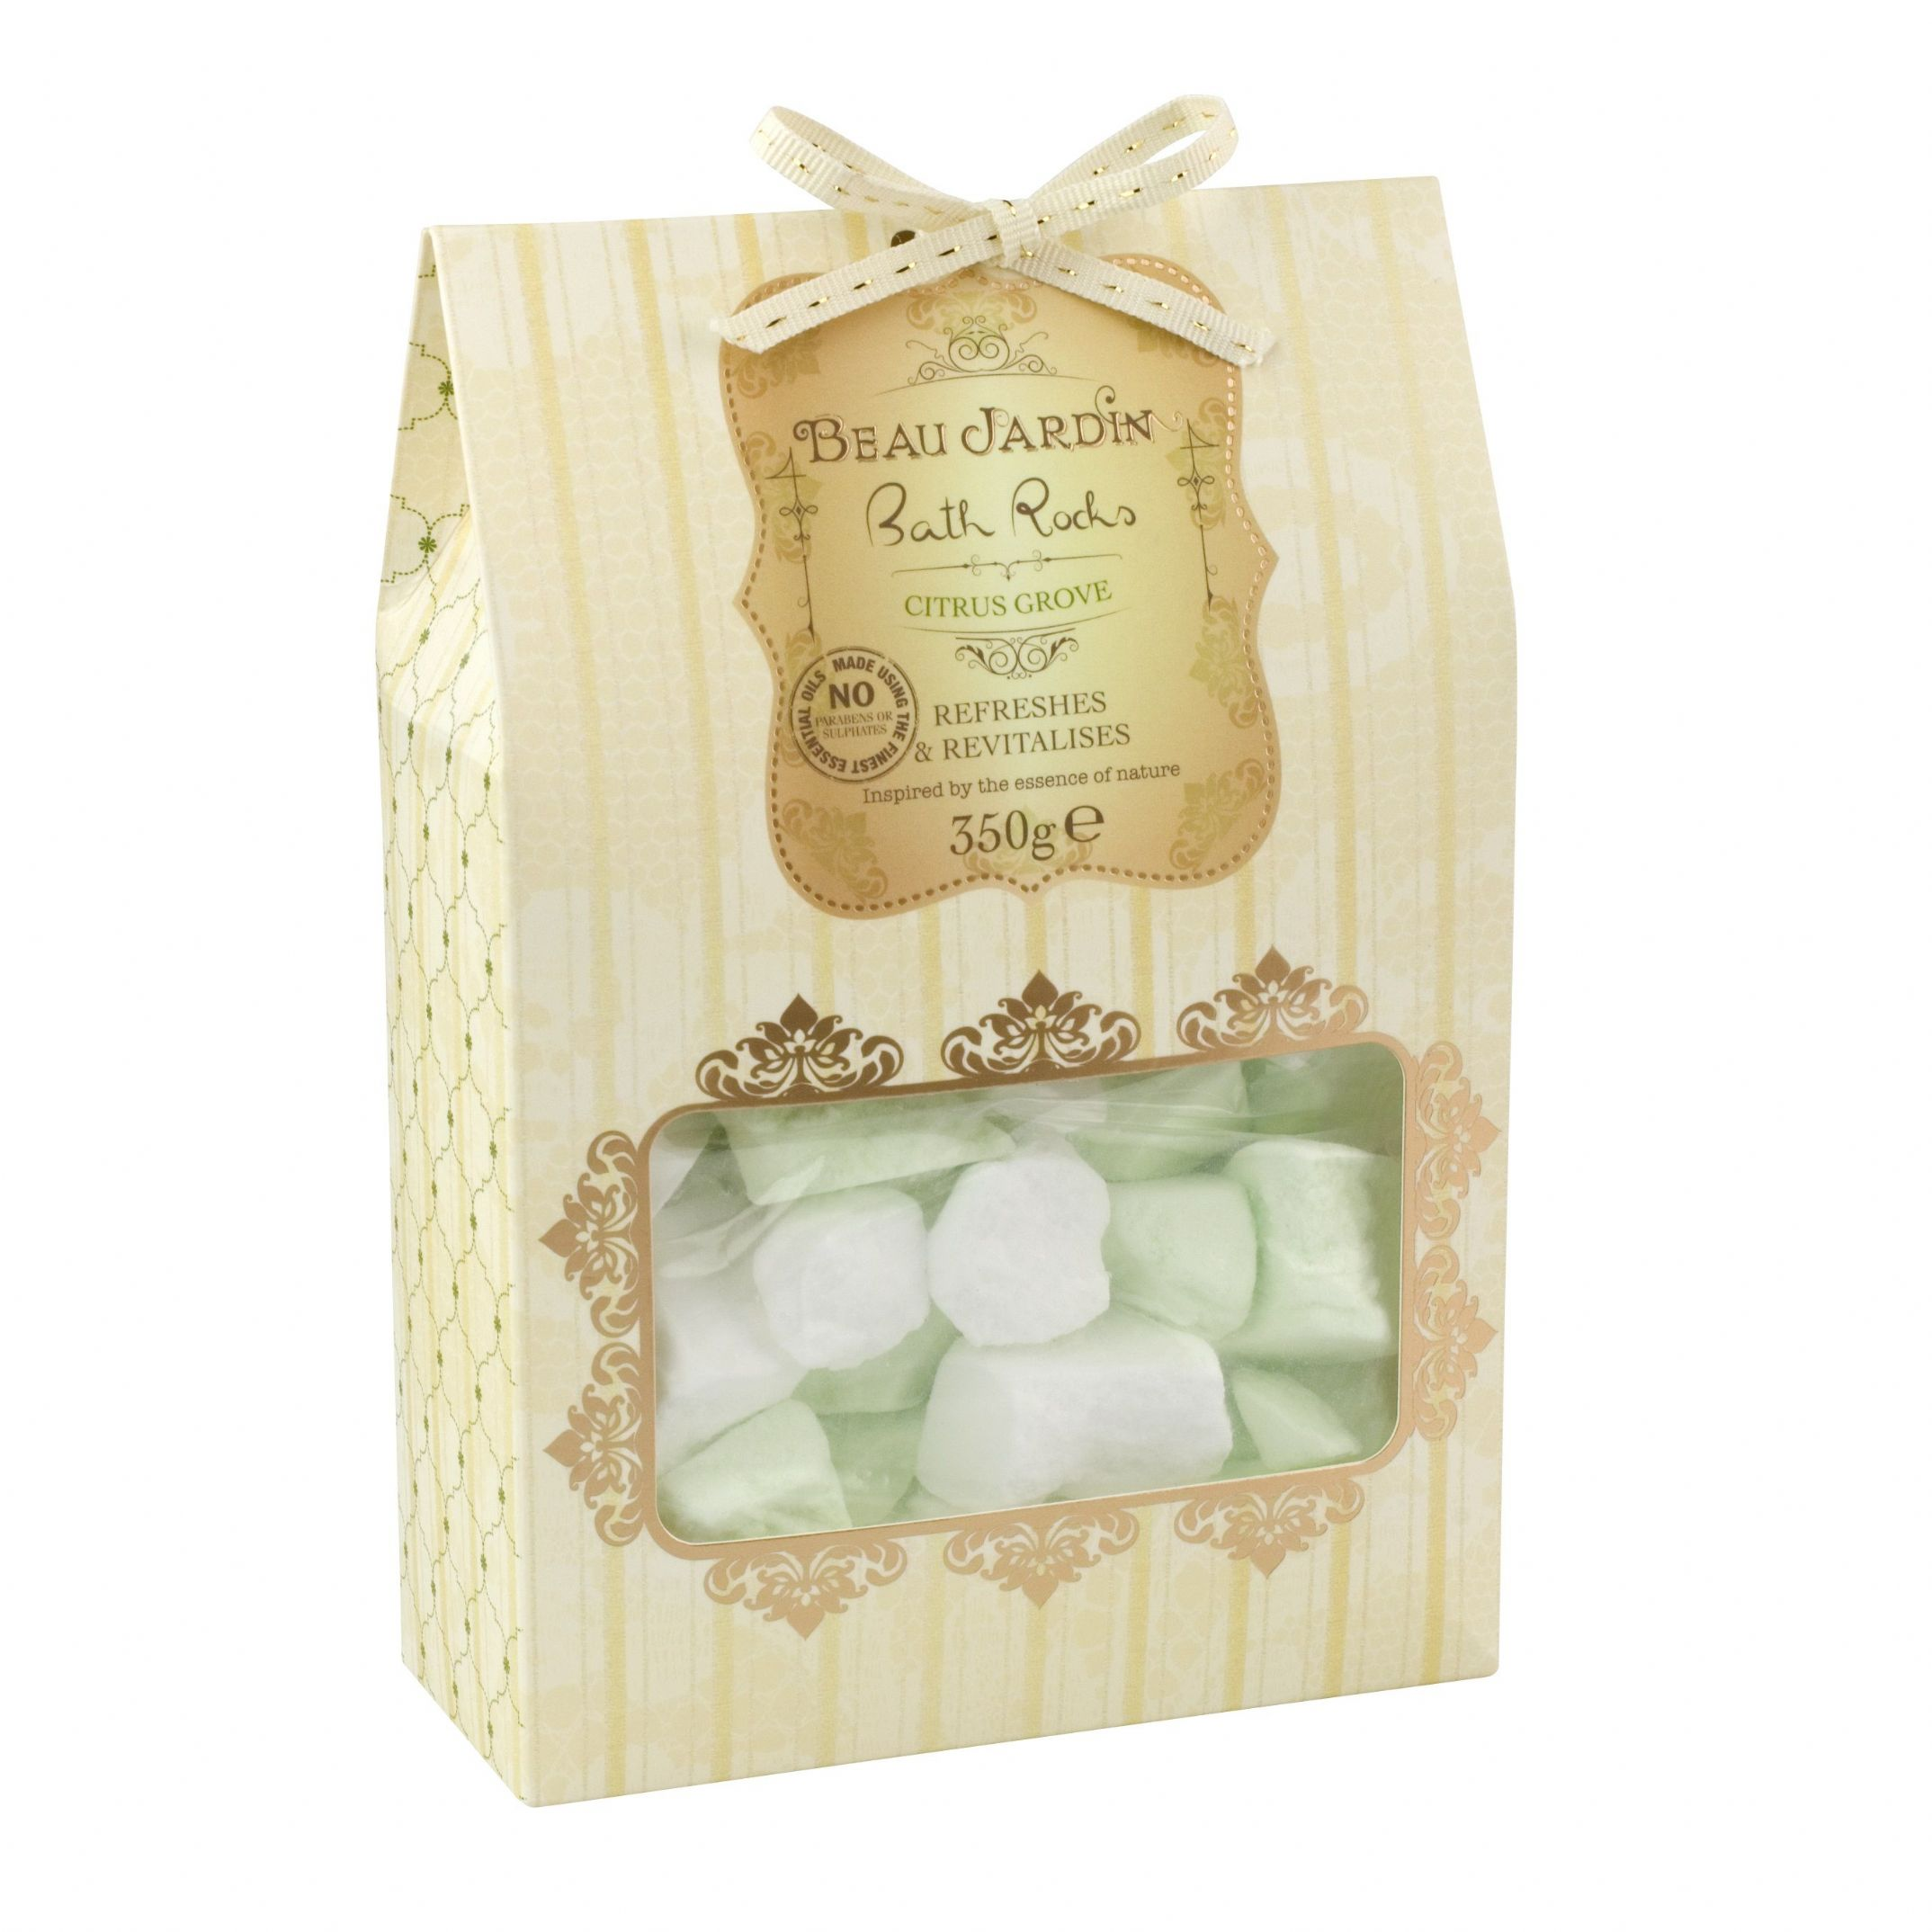 Citrus grove beau jardin bath rocks 350g bombs fizzers for Beau jardin bath rocks